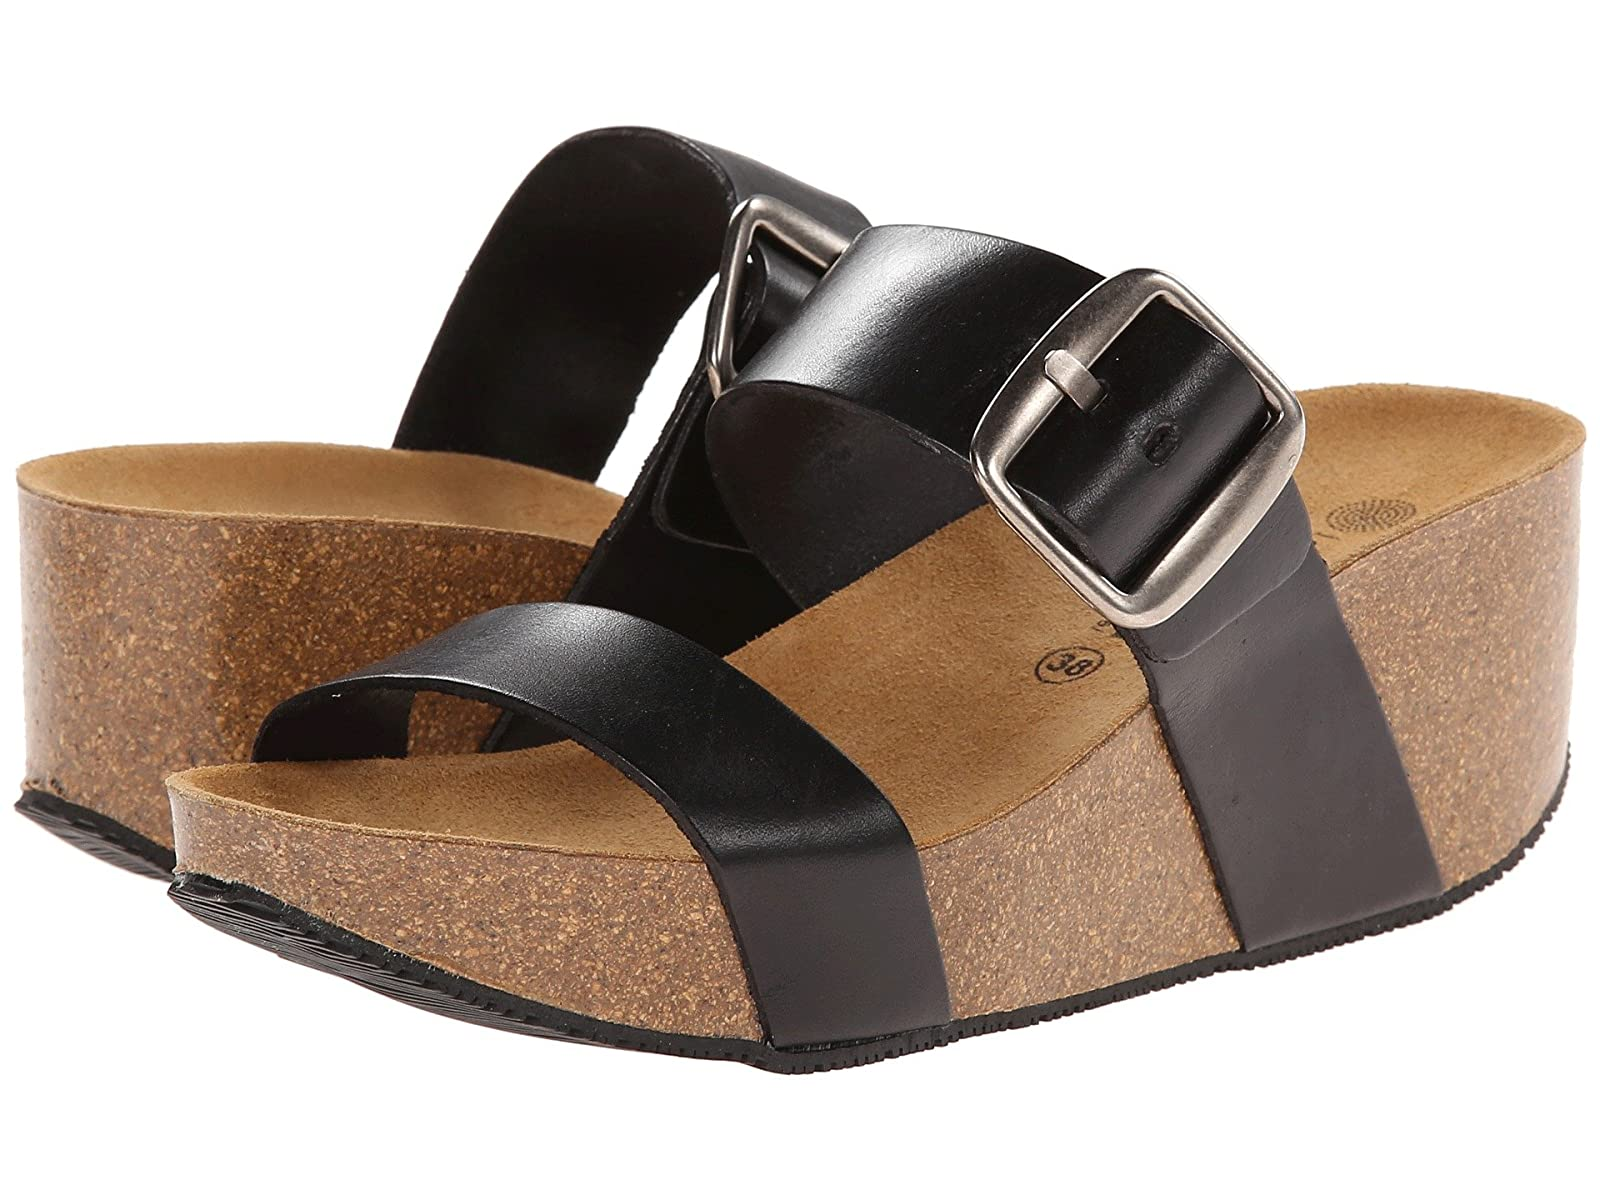 Eric Michael IzzyAtmospheric grades have affordable shoes